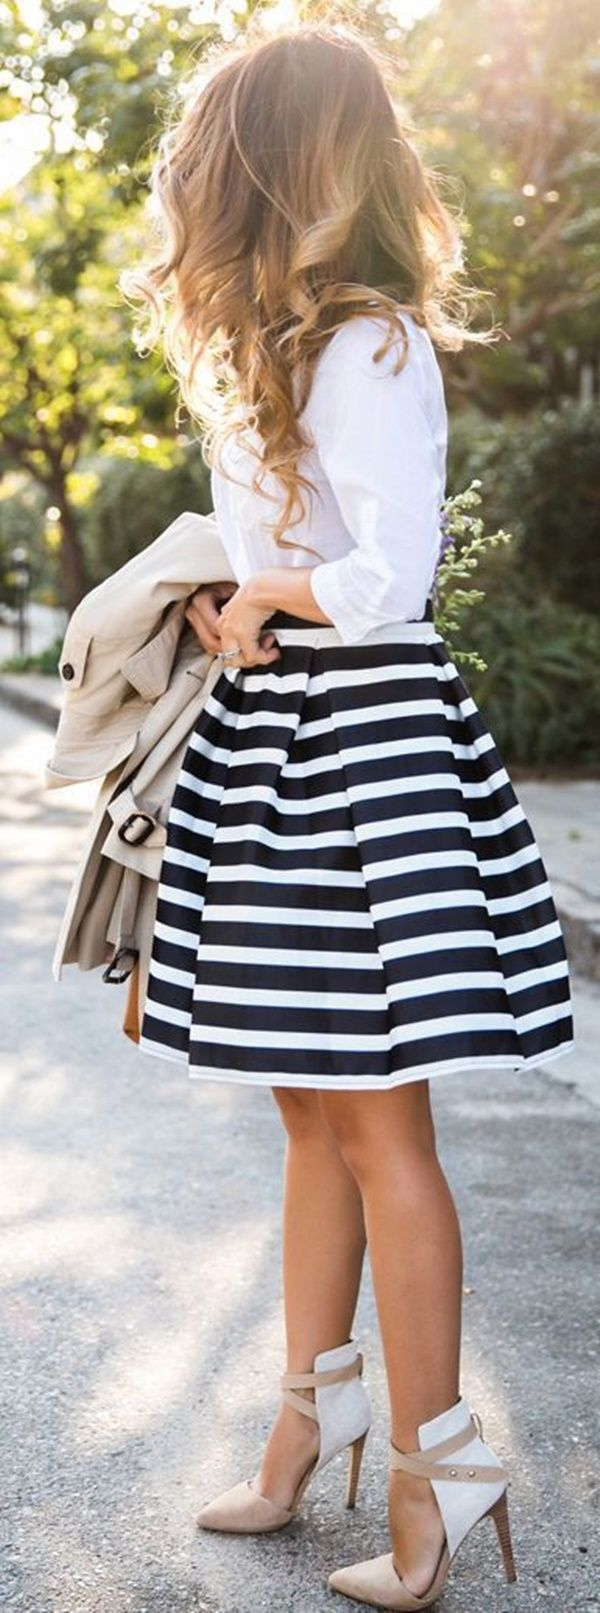 <3 SPRING will not Complete without Stripped Outfits <3 45 Charming Spring Work Outfits To Wear To Office